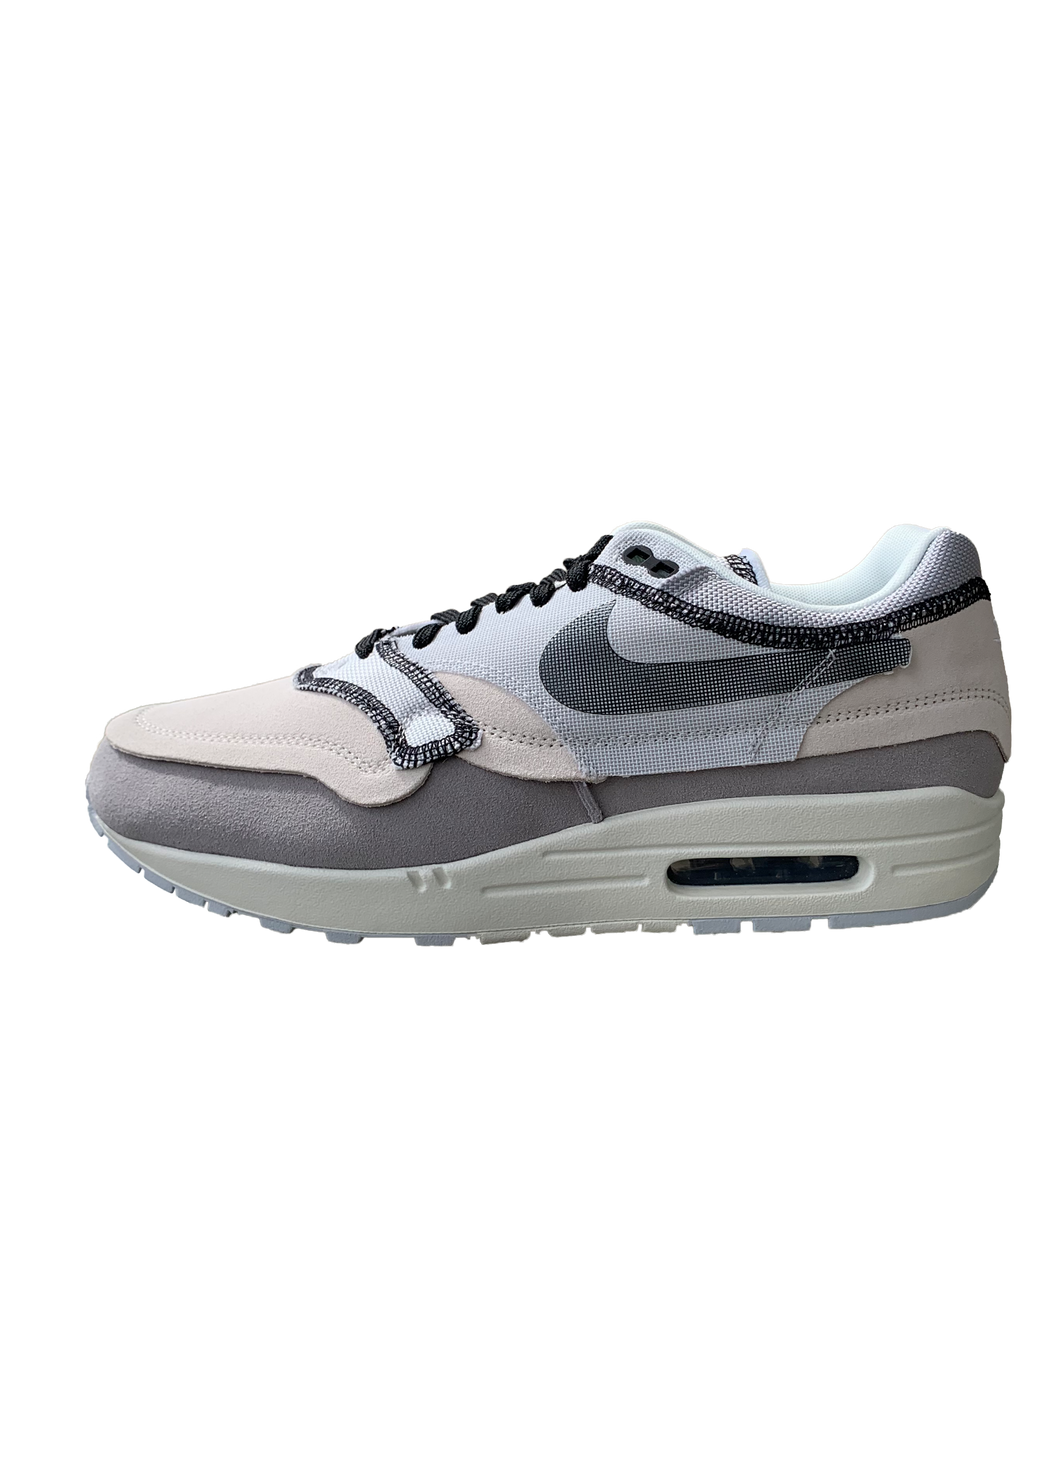 Nike Air Max 1 Premium Inside Out